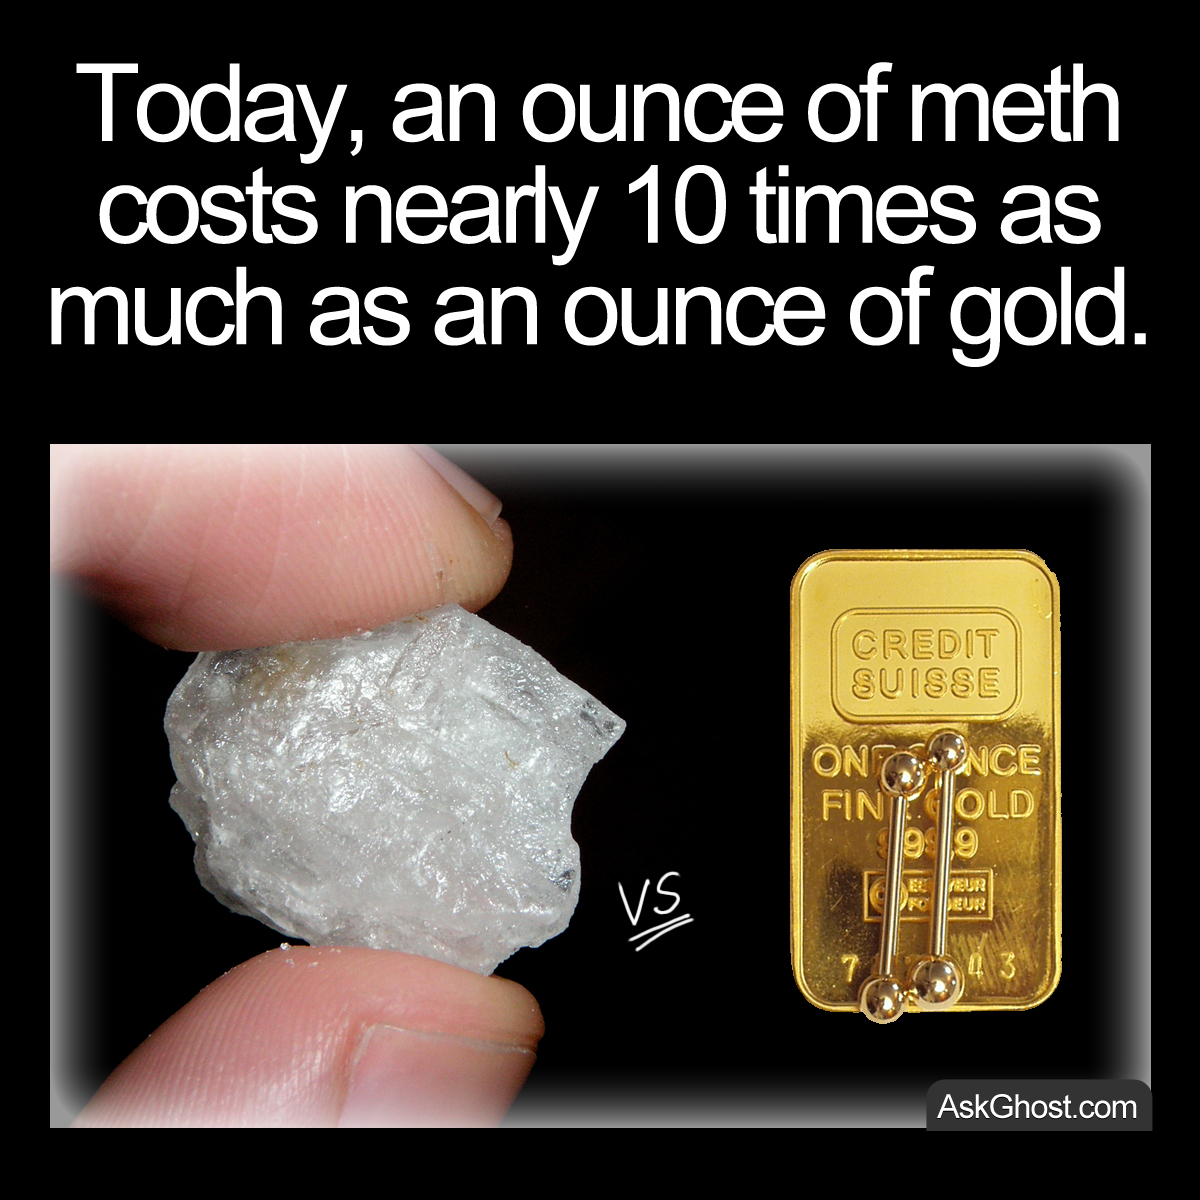 Today An Ounce Of Meth Costs Nearly 10 Times As Much